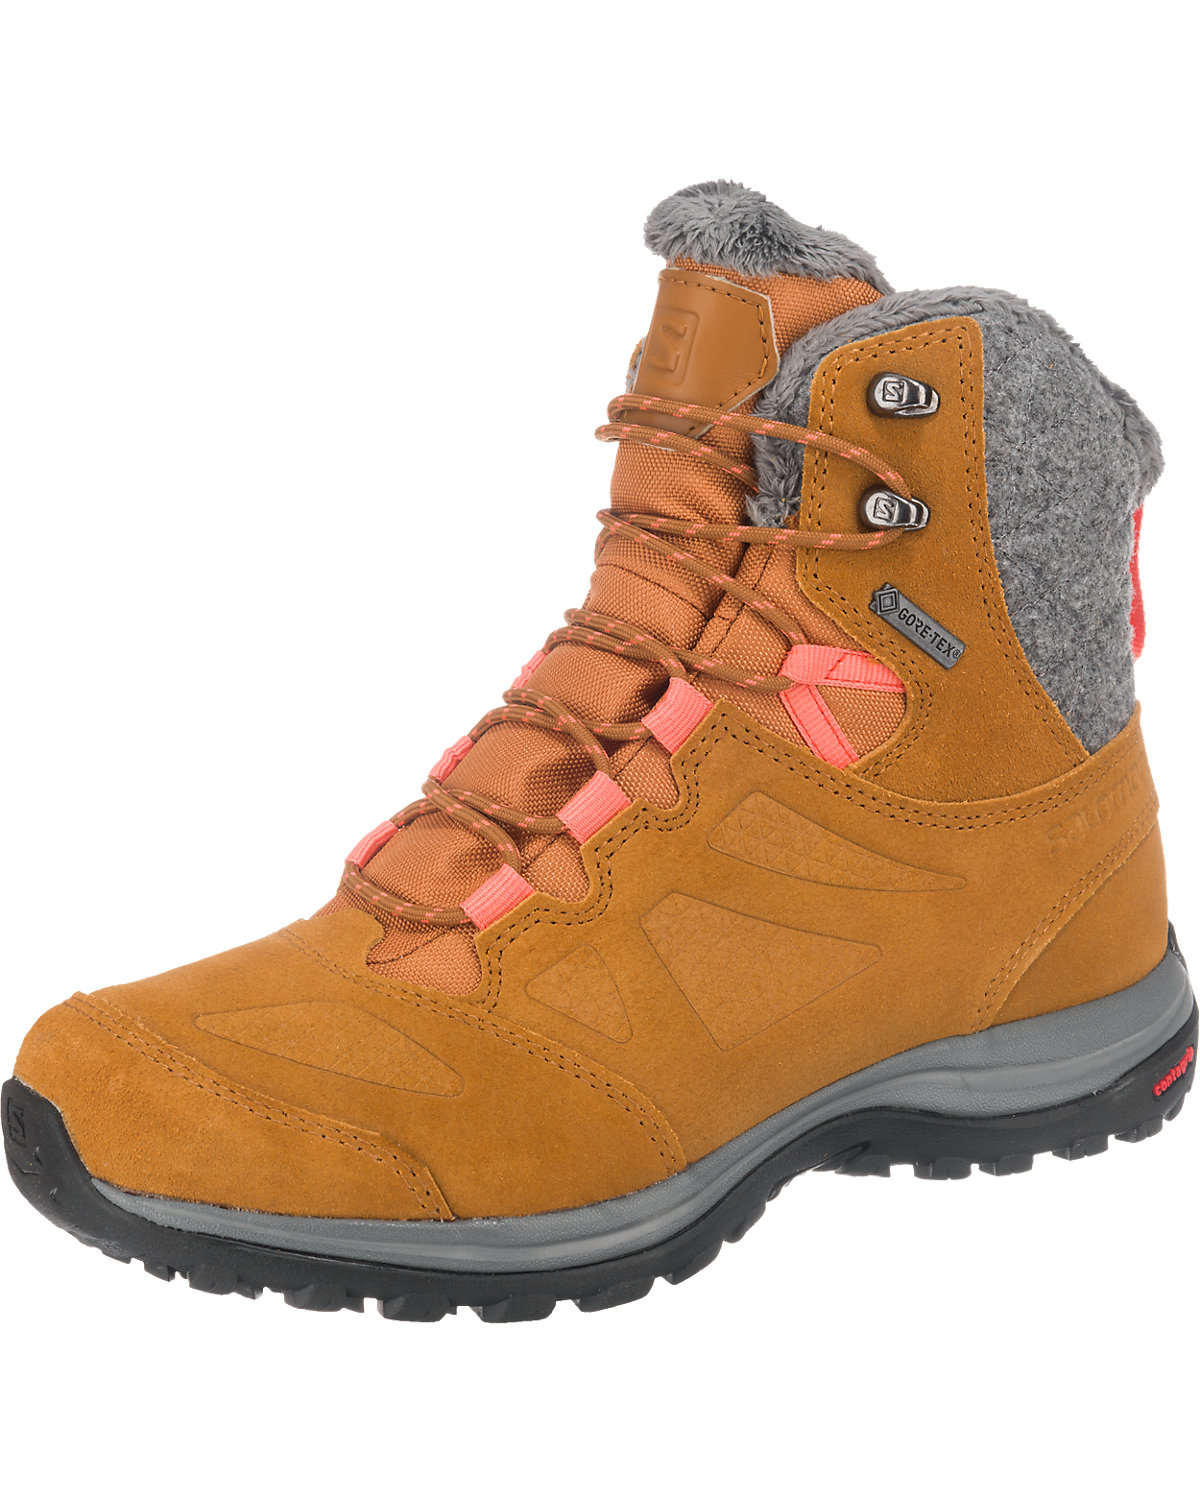 Salomon, Salomon Ellipse Winter Gtx® Stiefeletten, braun